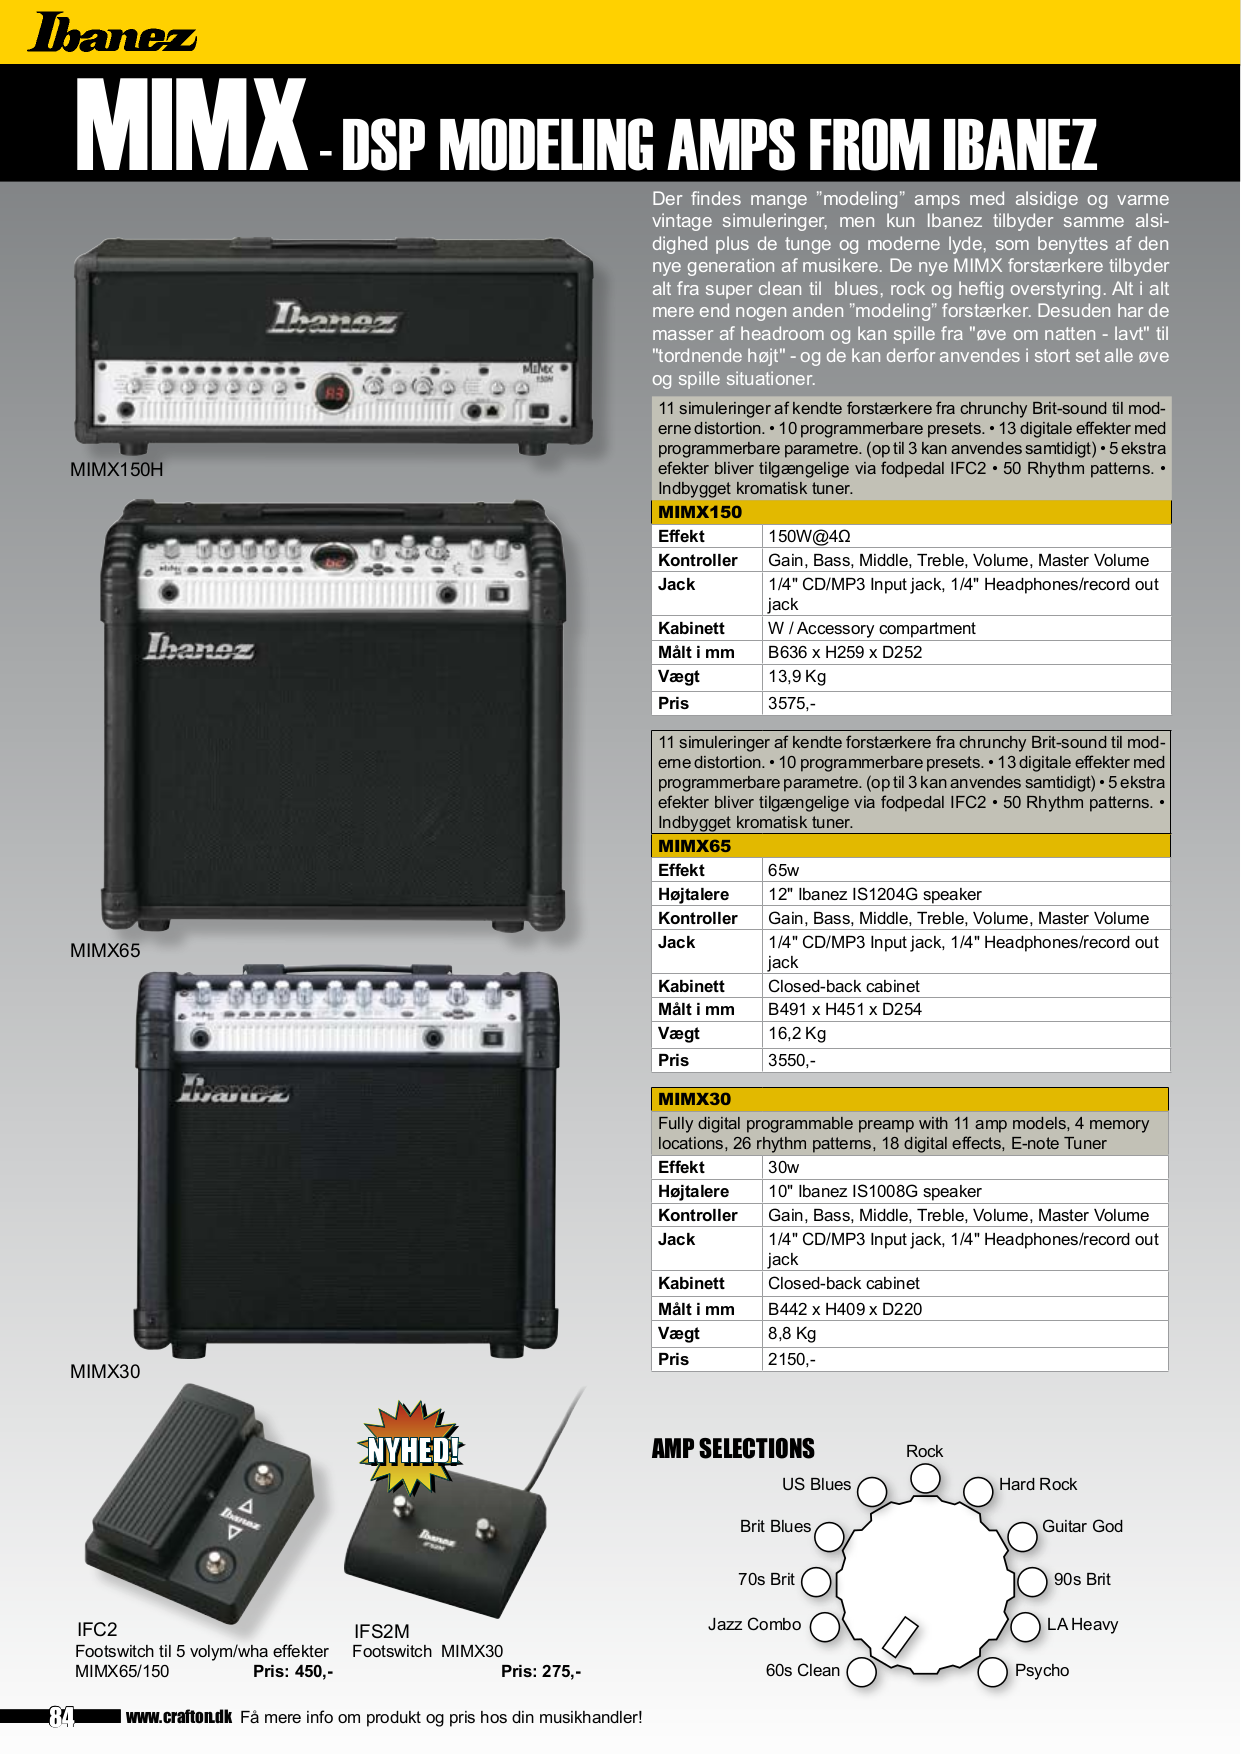 pdf manual for ibanez amp swx65 rh umlib com